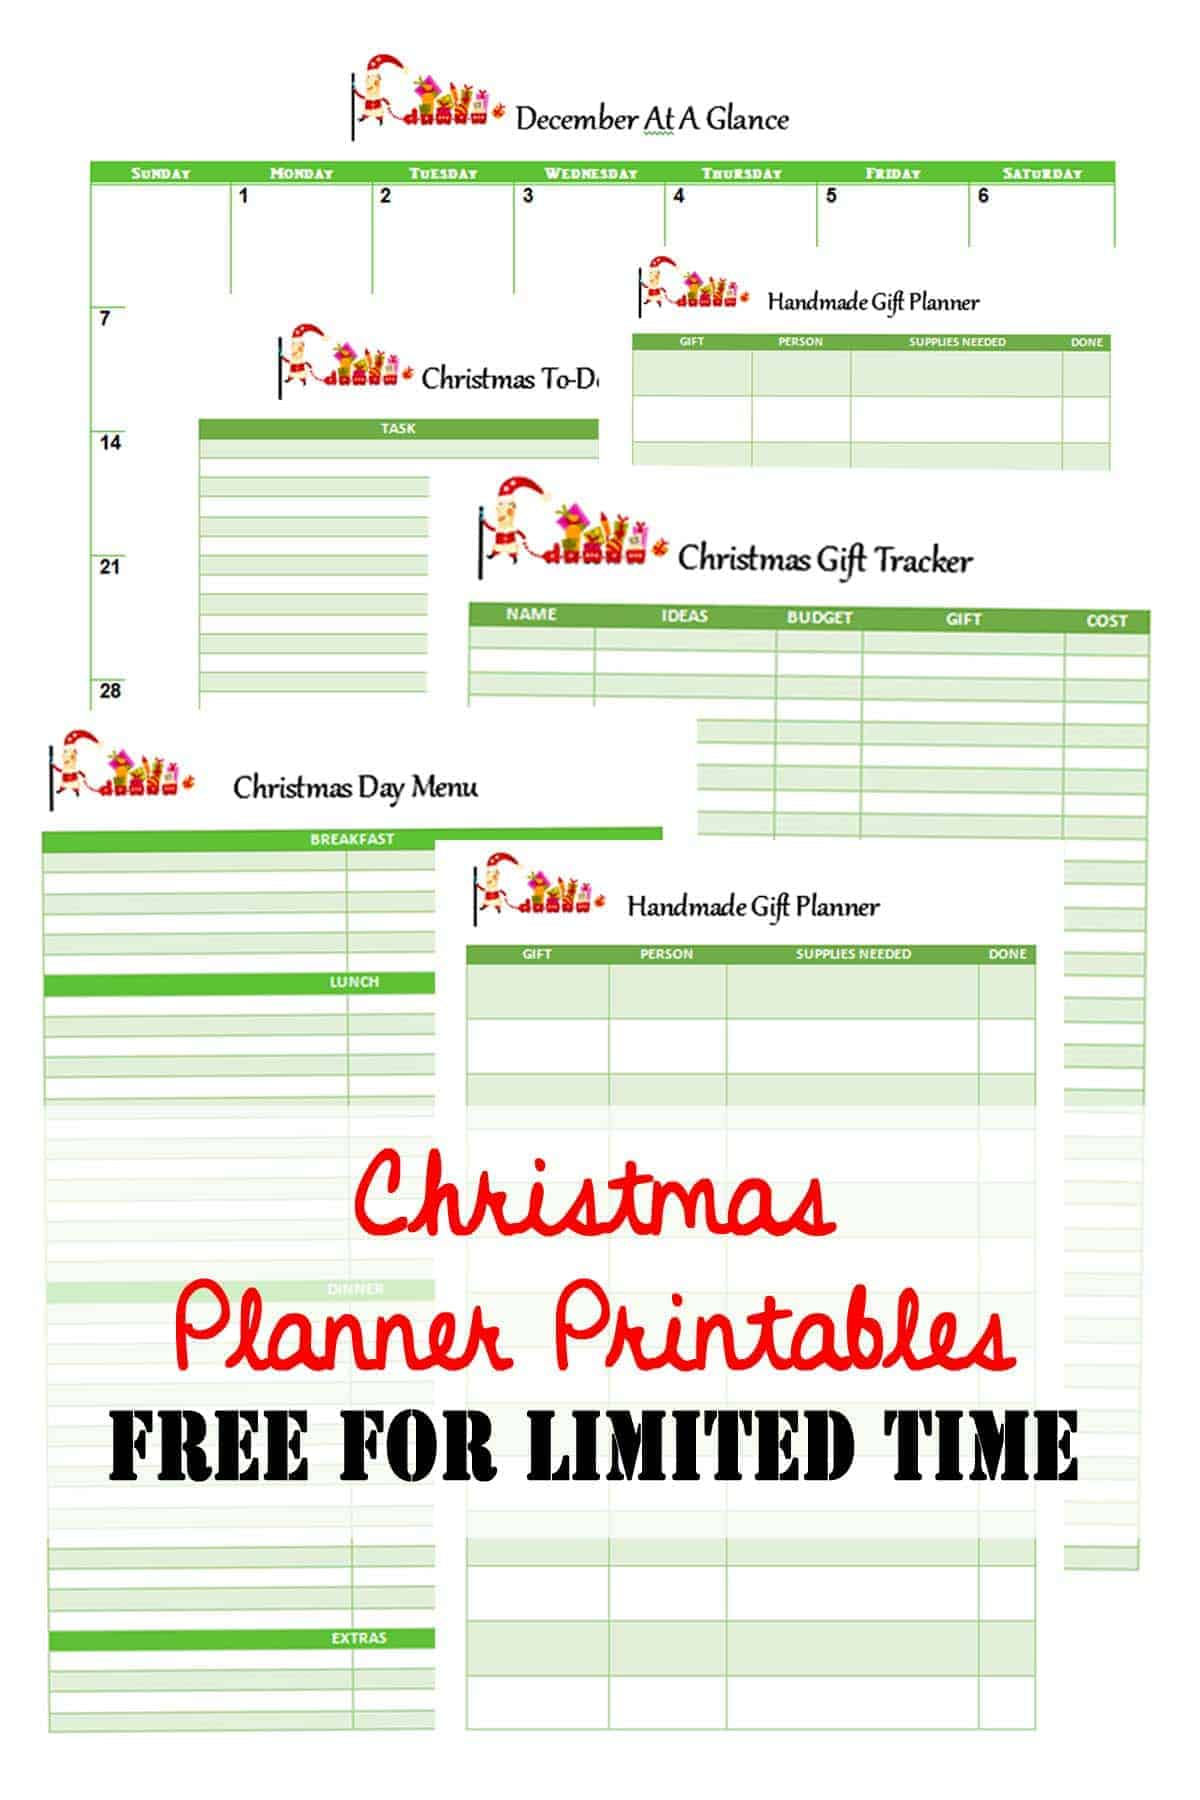 Christmas Planner Printables Free.Christmas Planner Printables Simplify Create Inspire